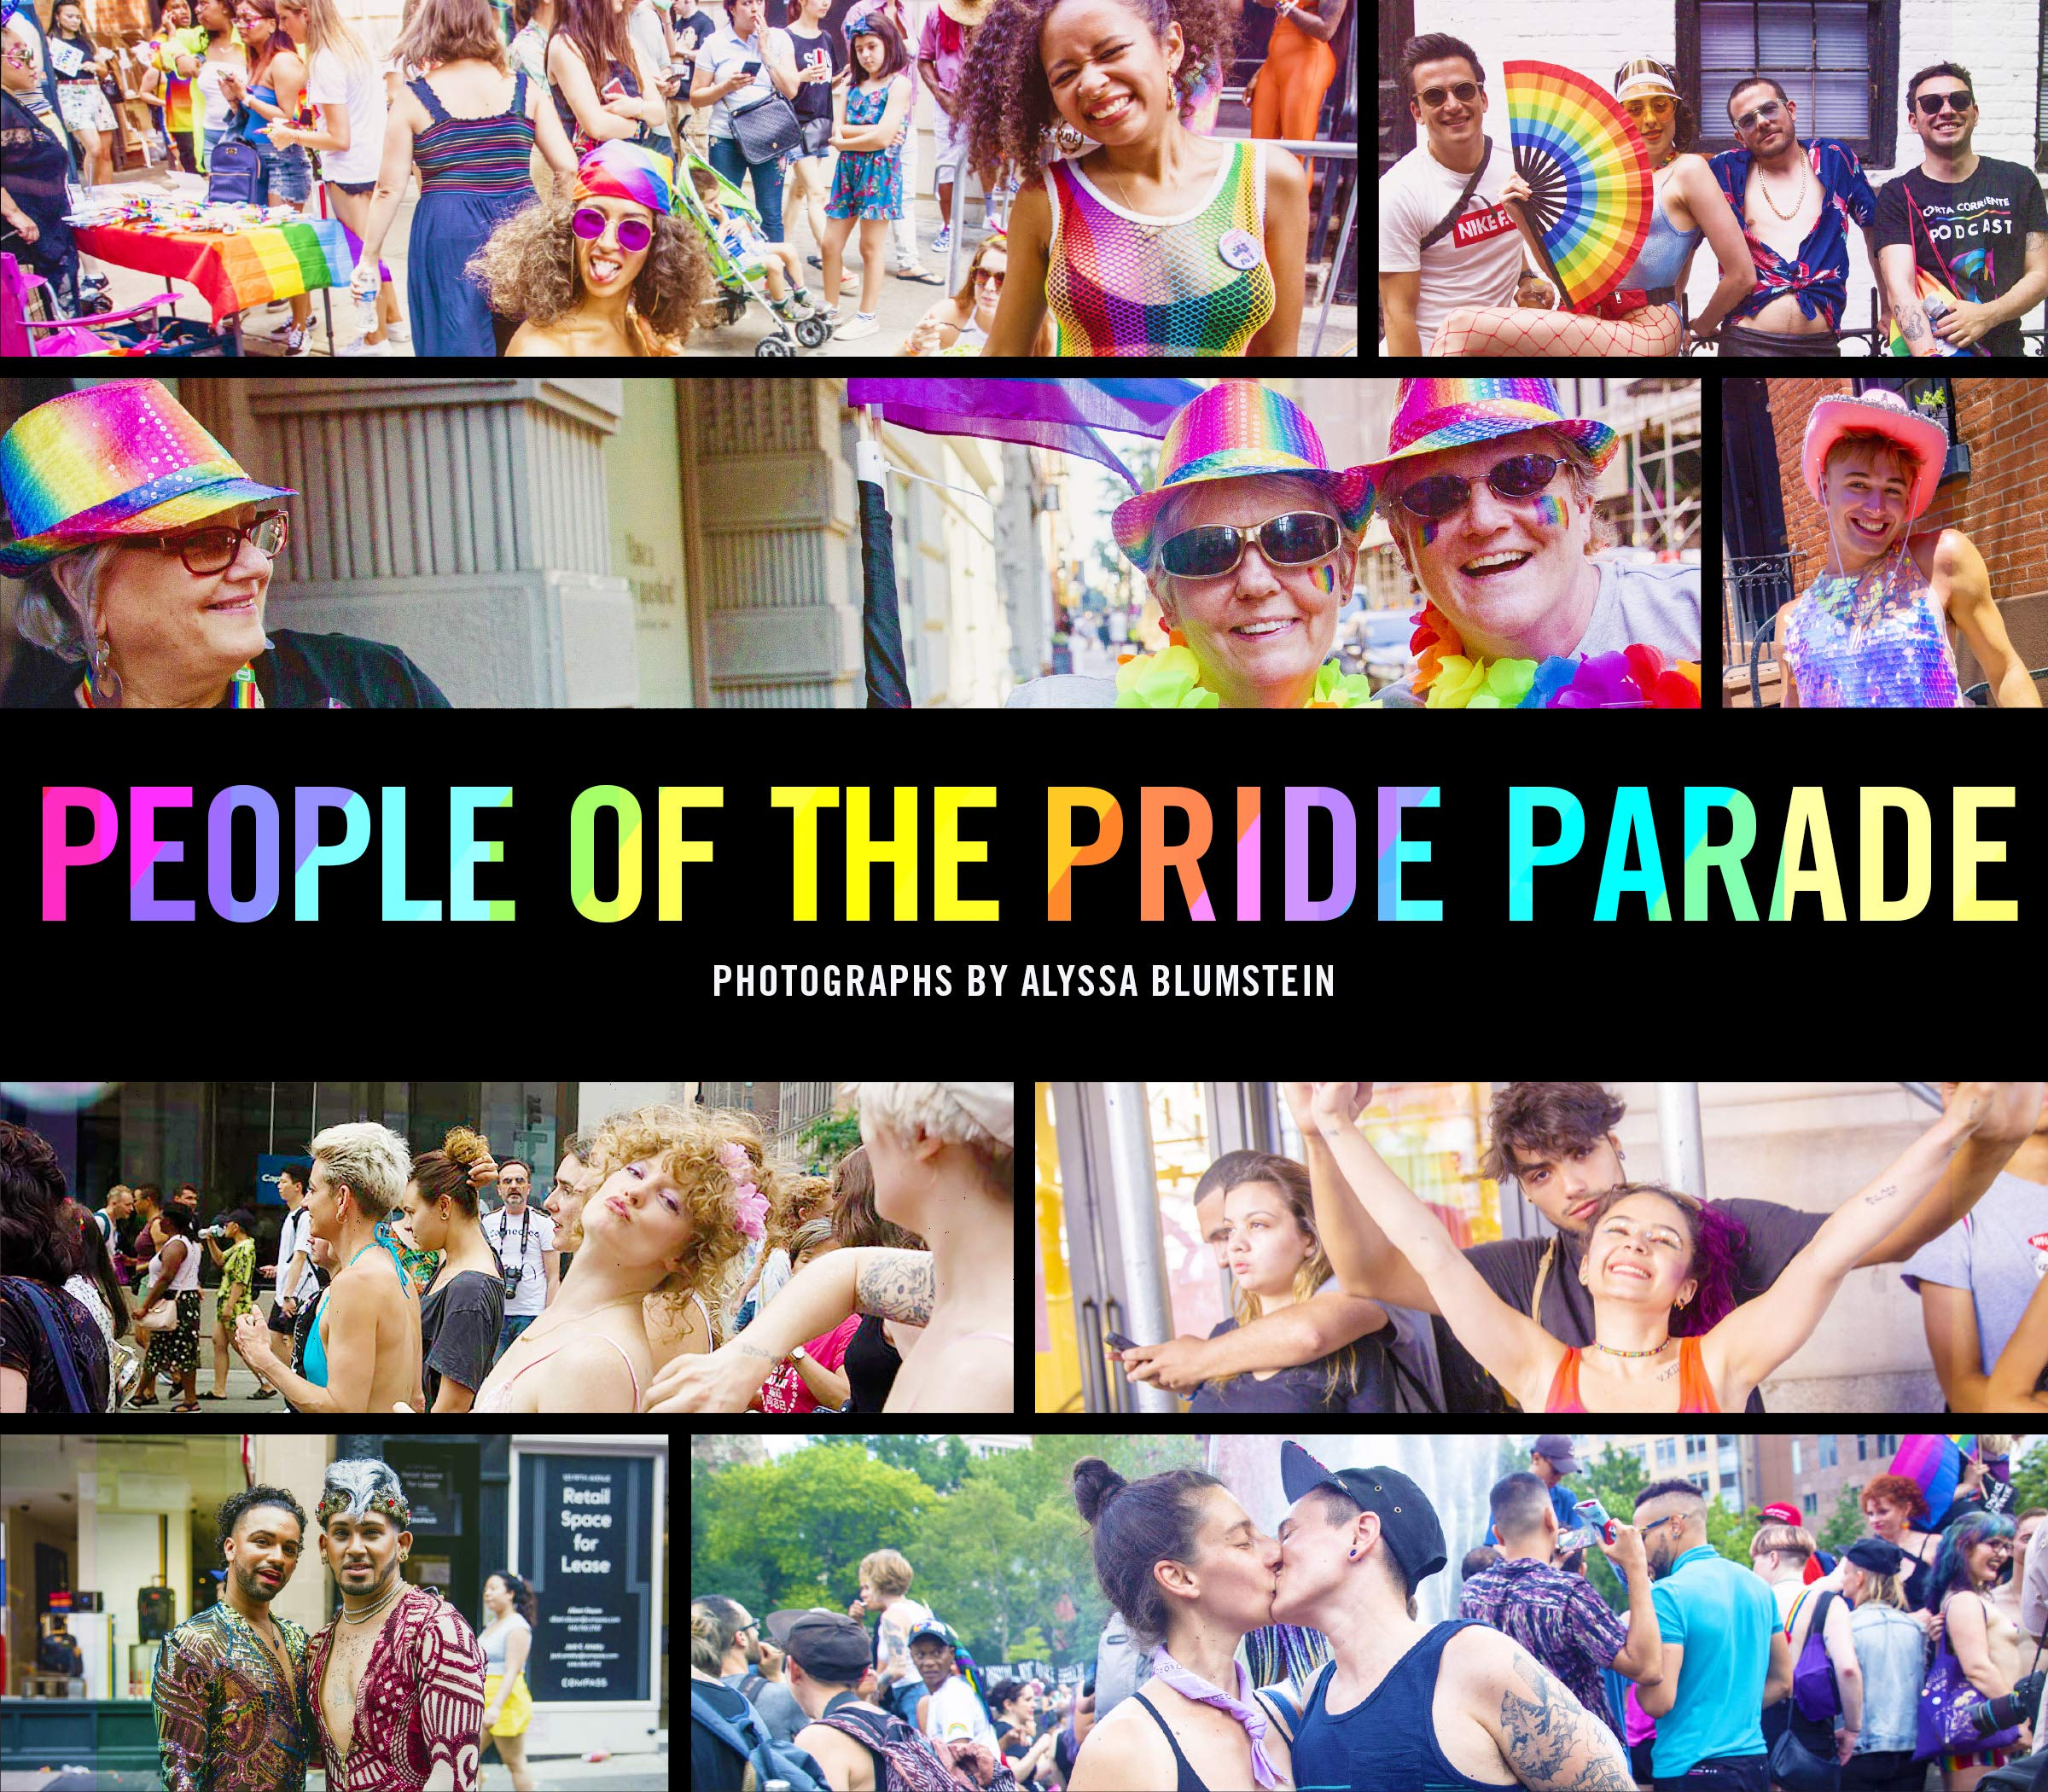 Image OfPeople Of The Pride Parade